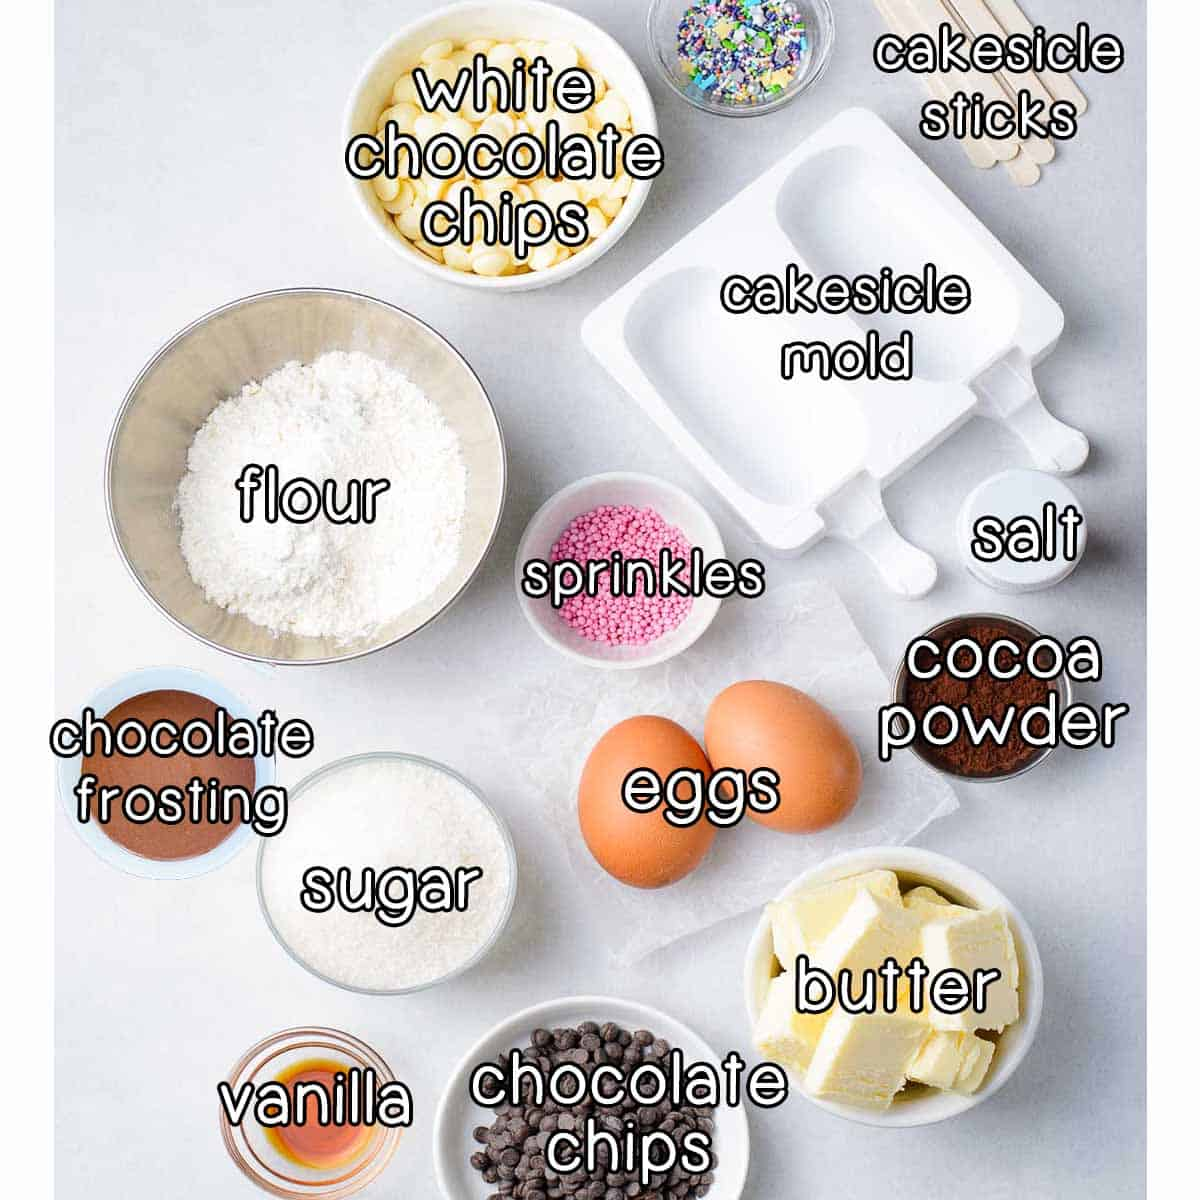 Overhead shot of ingredients- cakesicle sticks, white chocolate chips, cakesicle mold, salt, sprinkles, flour, chocolate frosting, sugar, eggs, cocoa powder, vanilla, chocolate chips, and butter.